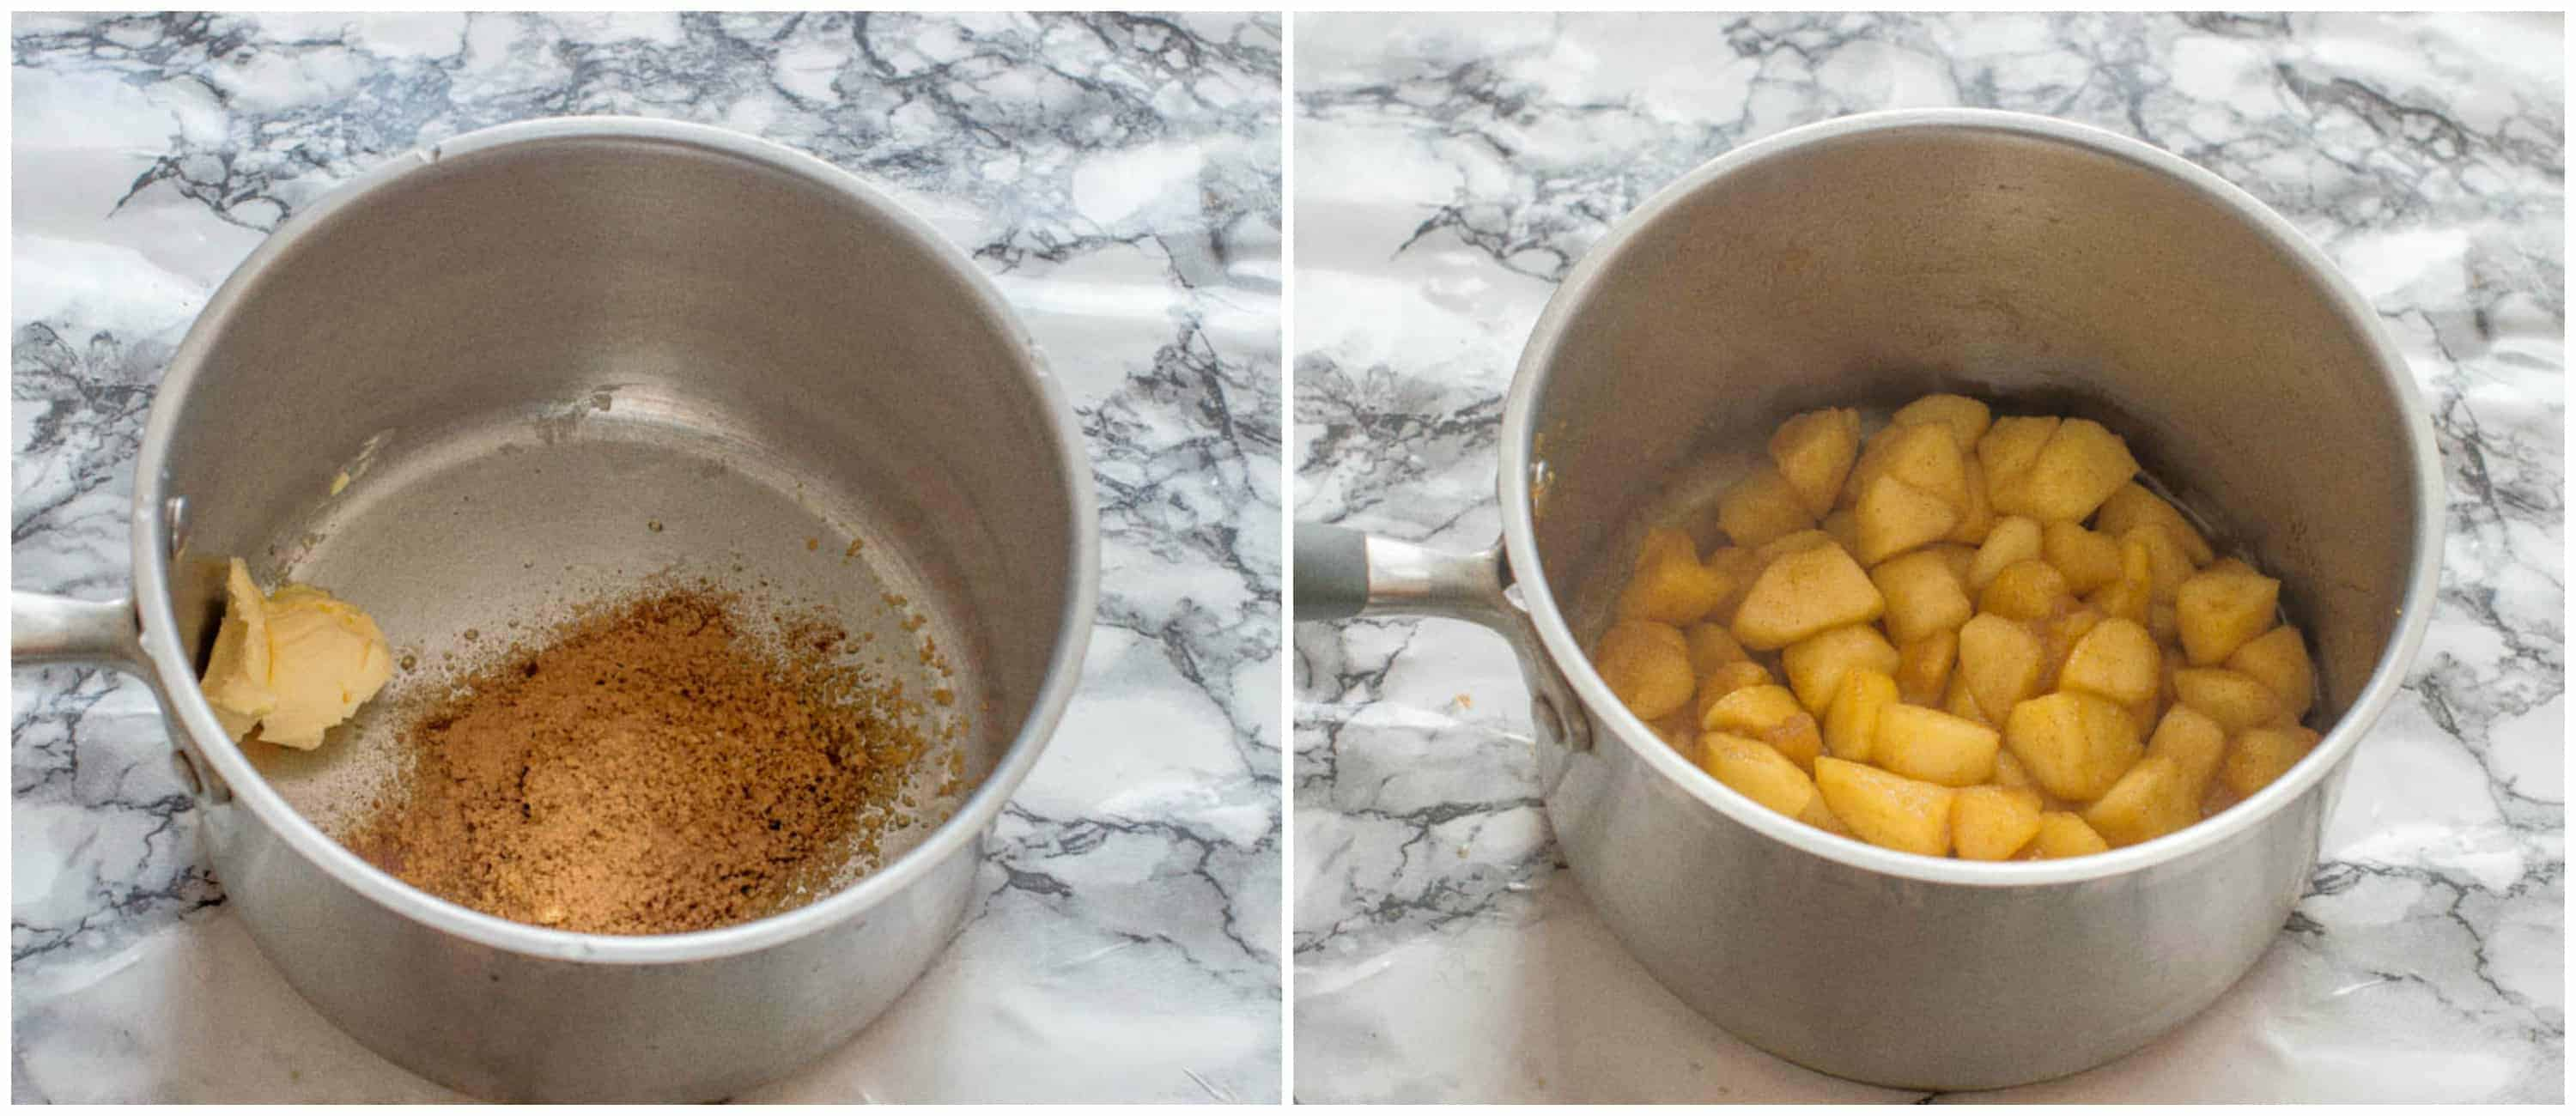 stewing the apples